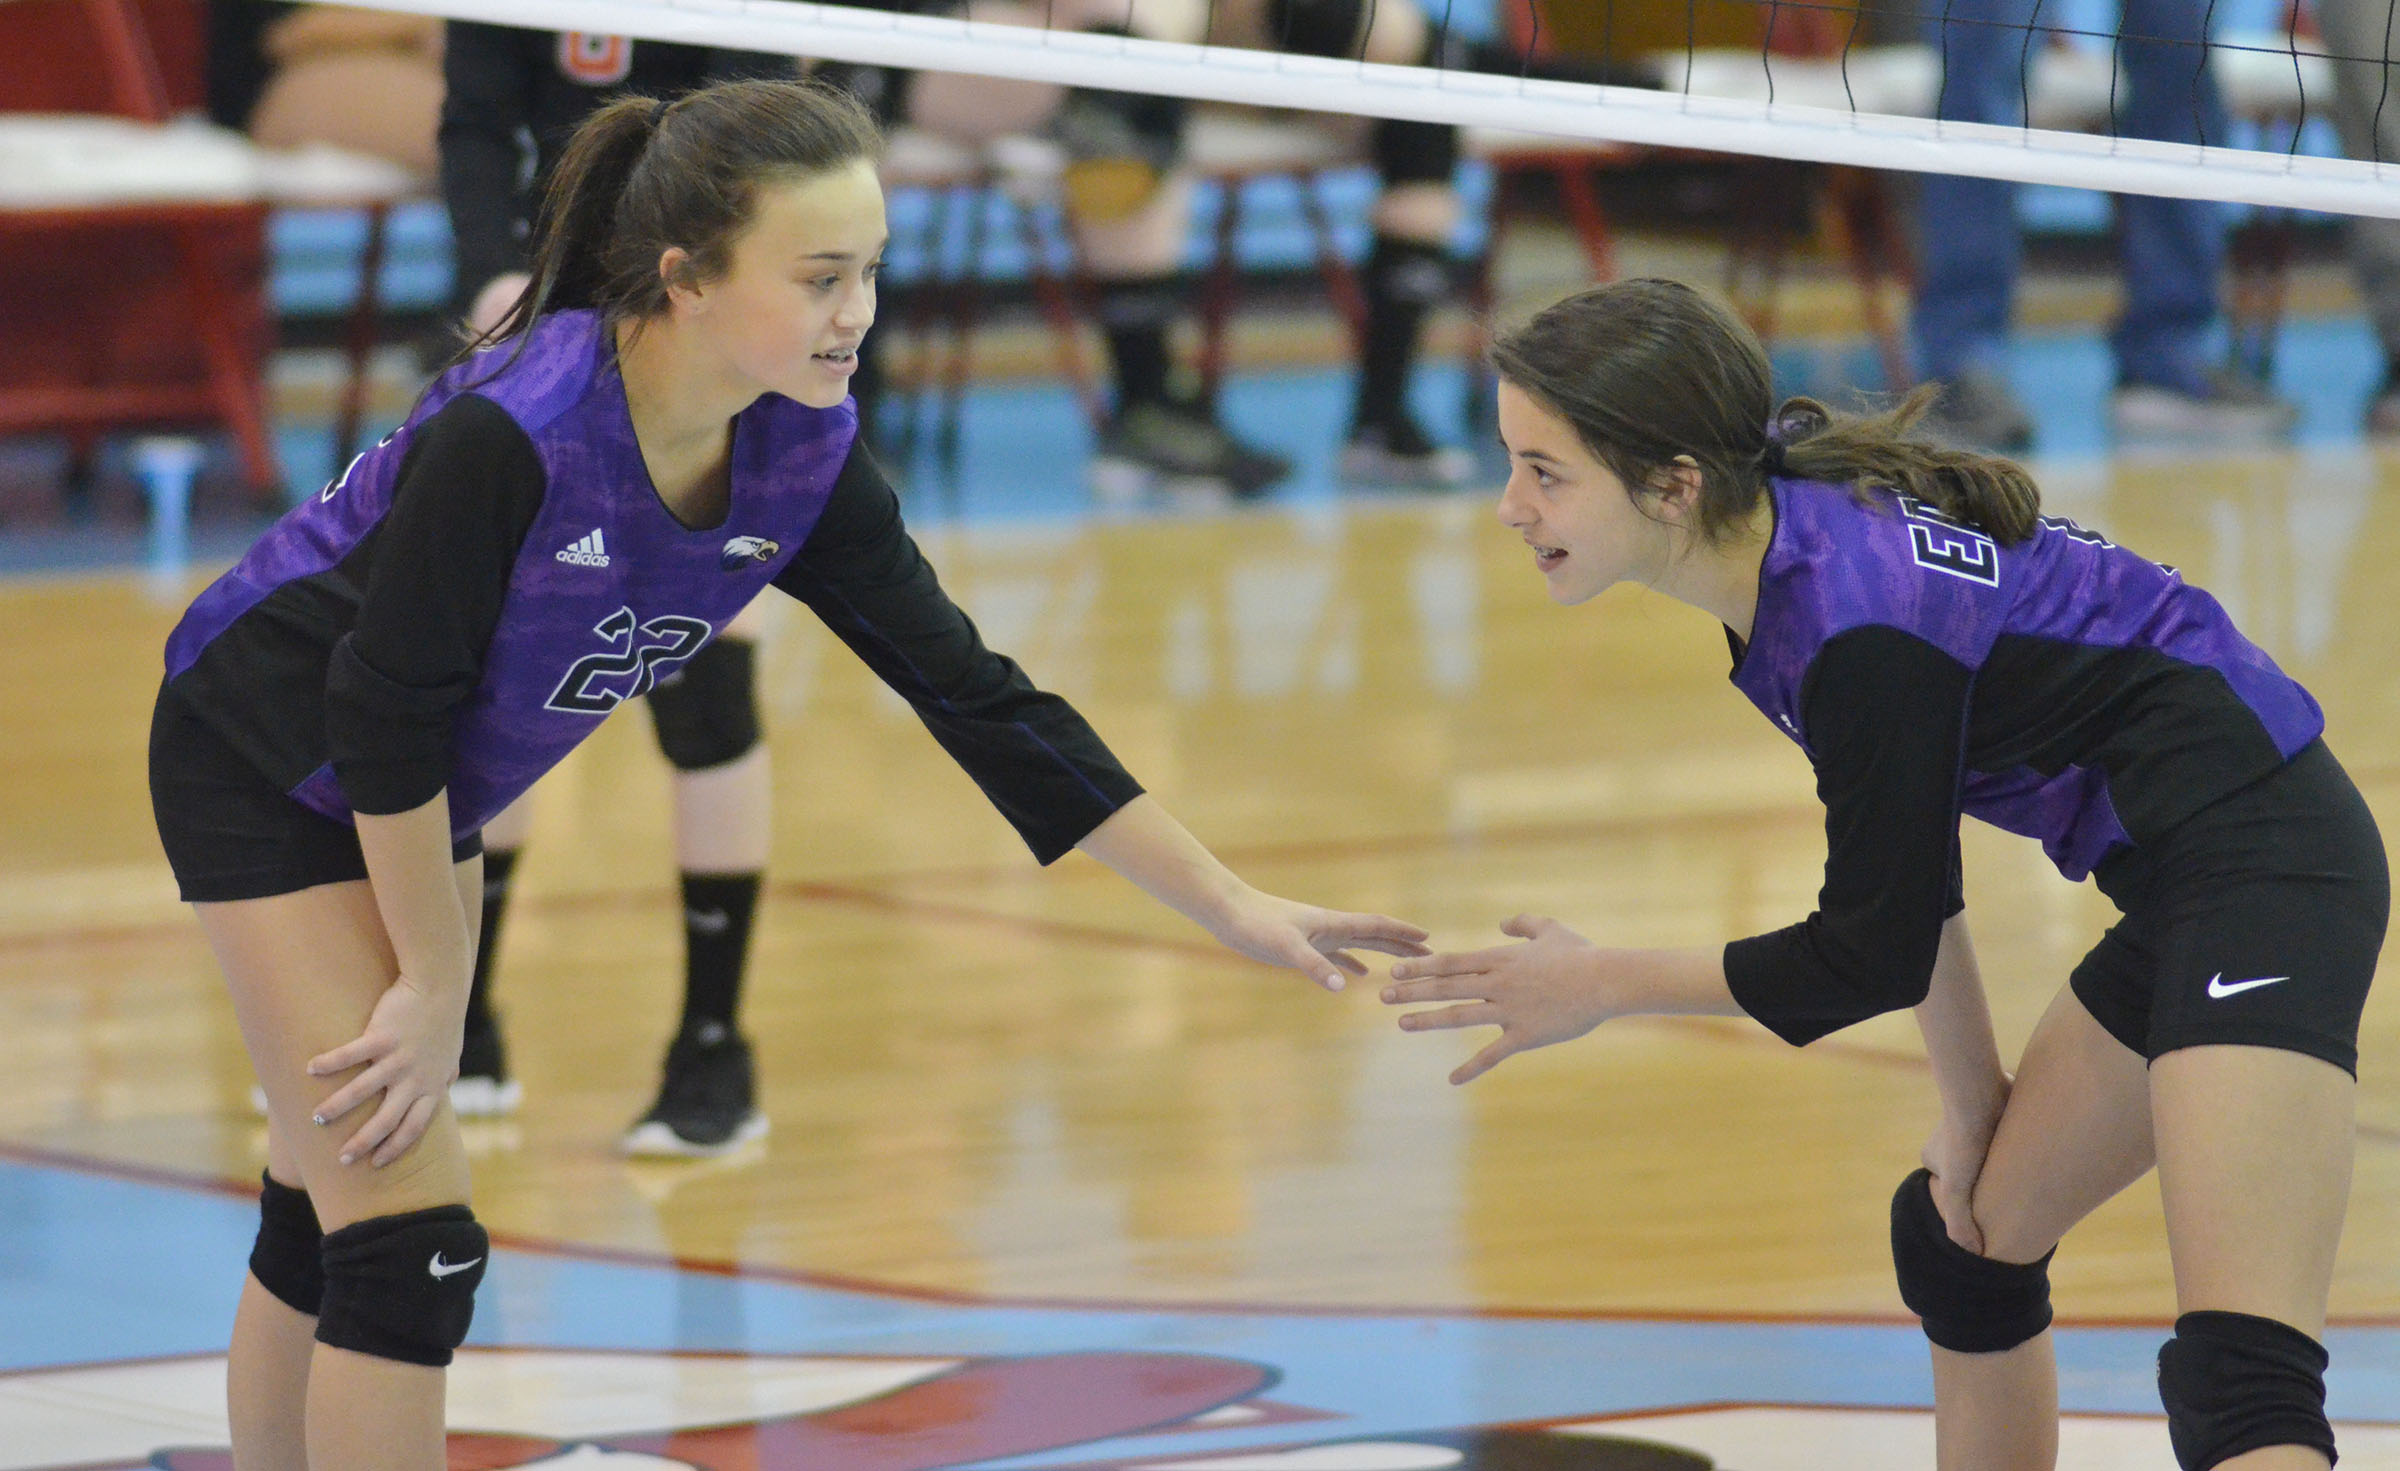 CMS seventh-graders Tayler Thompson, at left, and Kaylyn Smith get set for the serve.